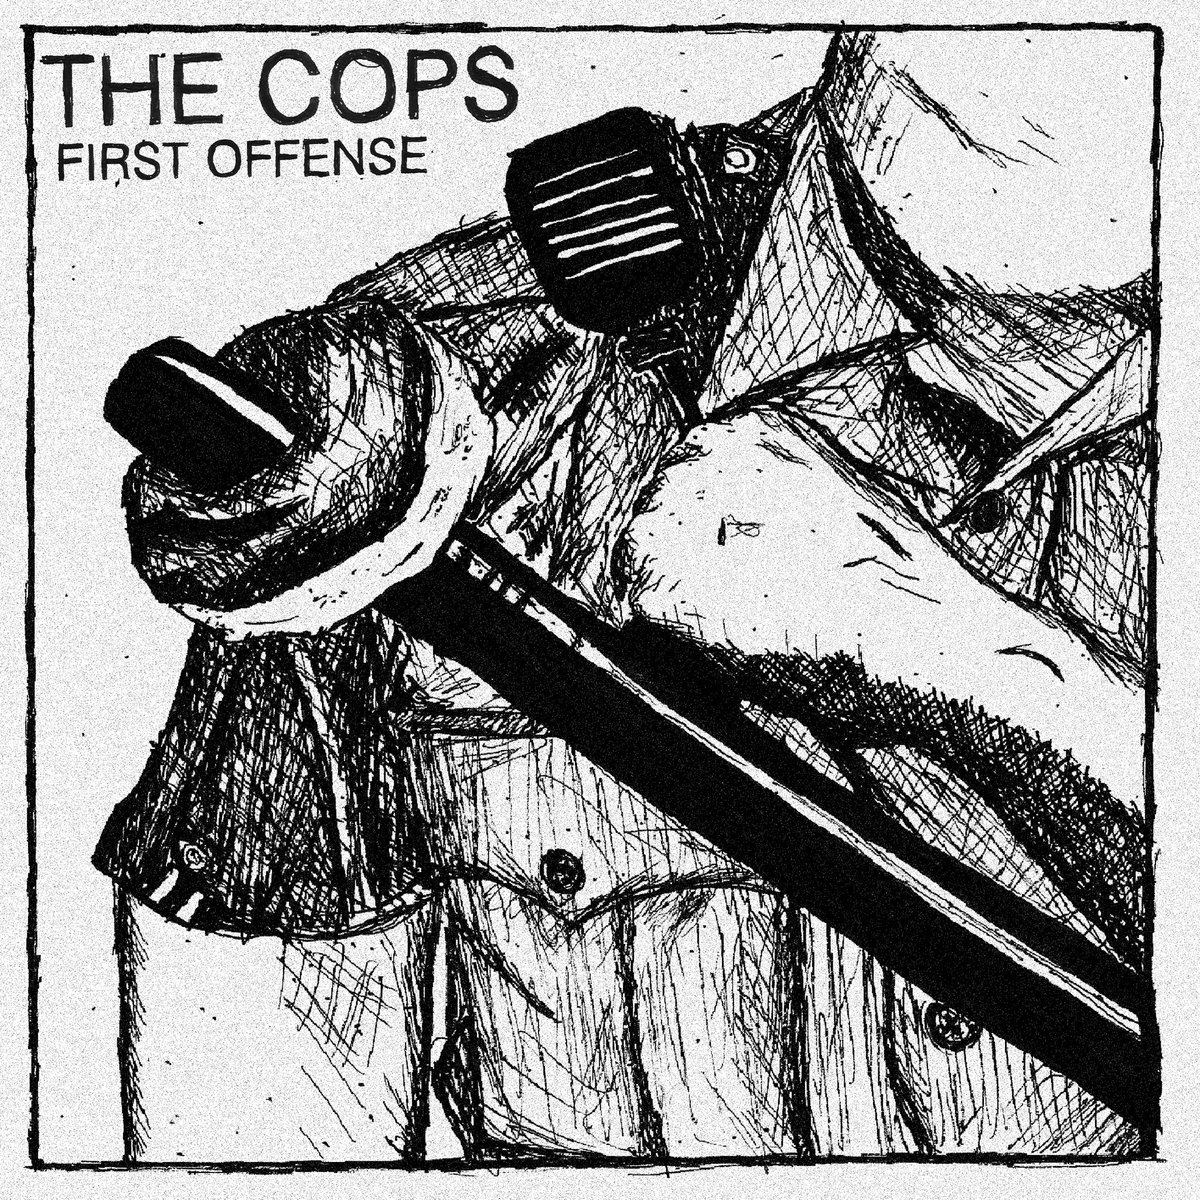 THE COPS - FIRST OFFENSE 1 - fanzine